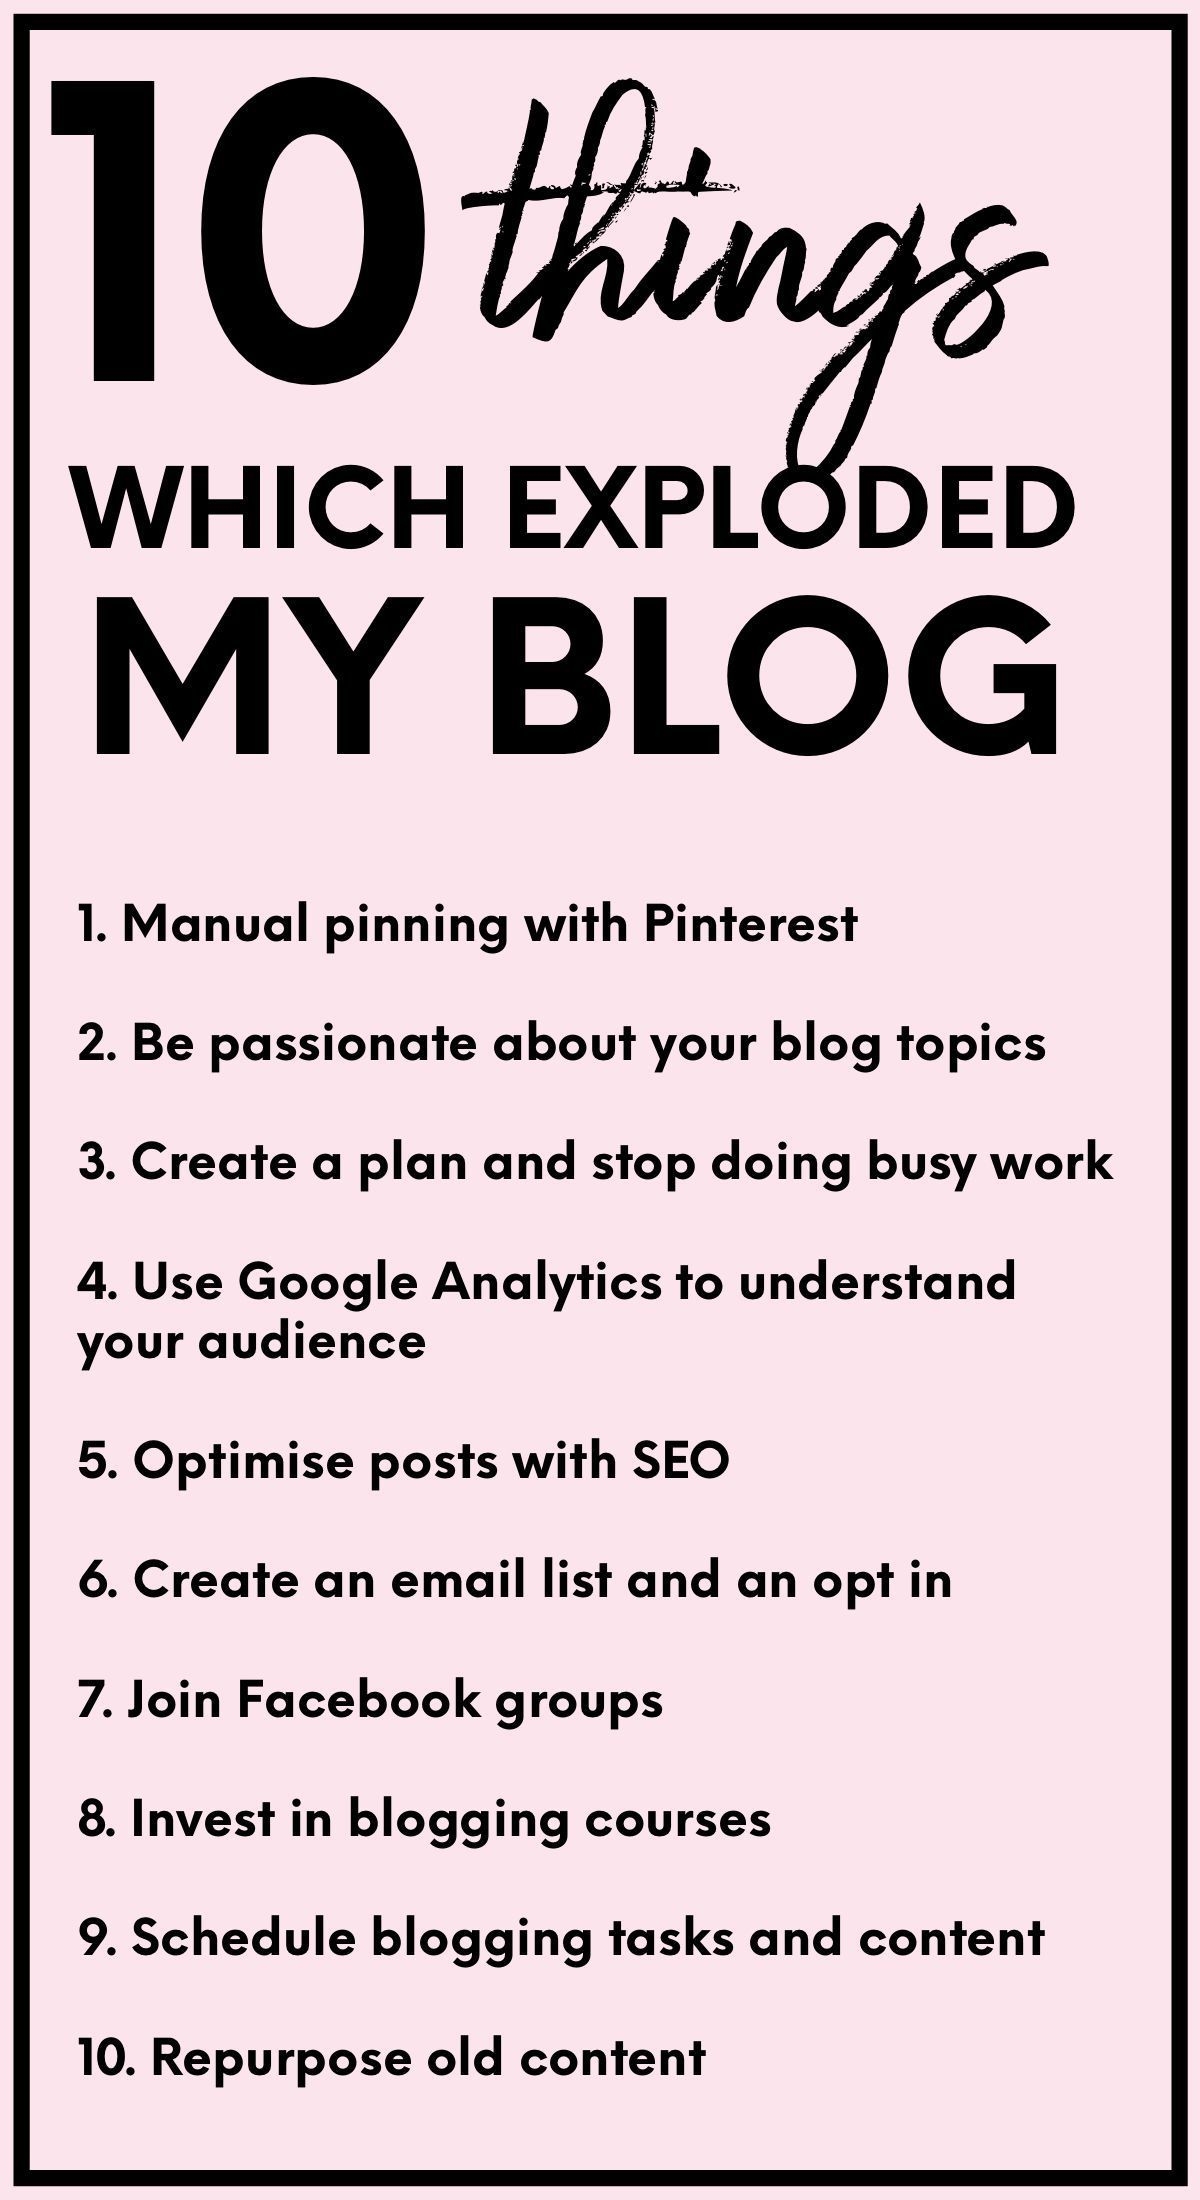 Easy steps for your Blog #bloggonh Great list showing ways to expand your blogging presence online. #bloggonh